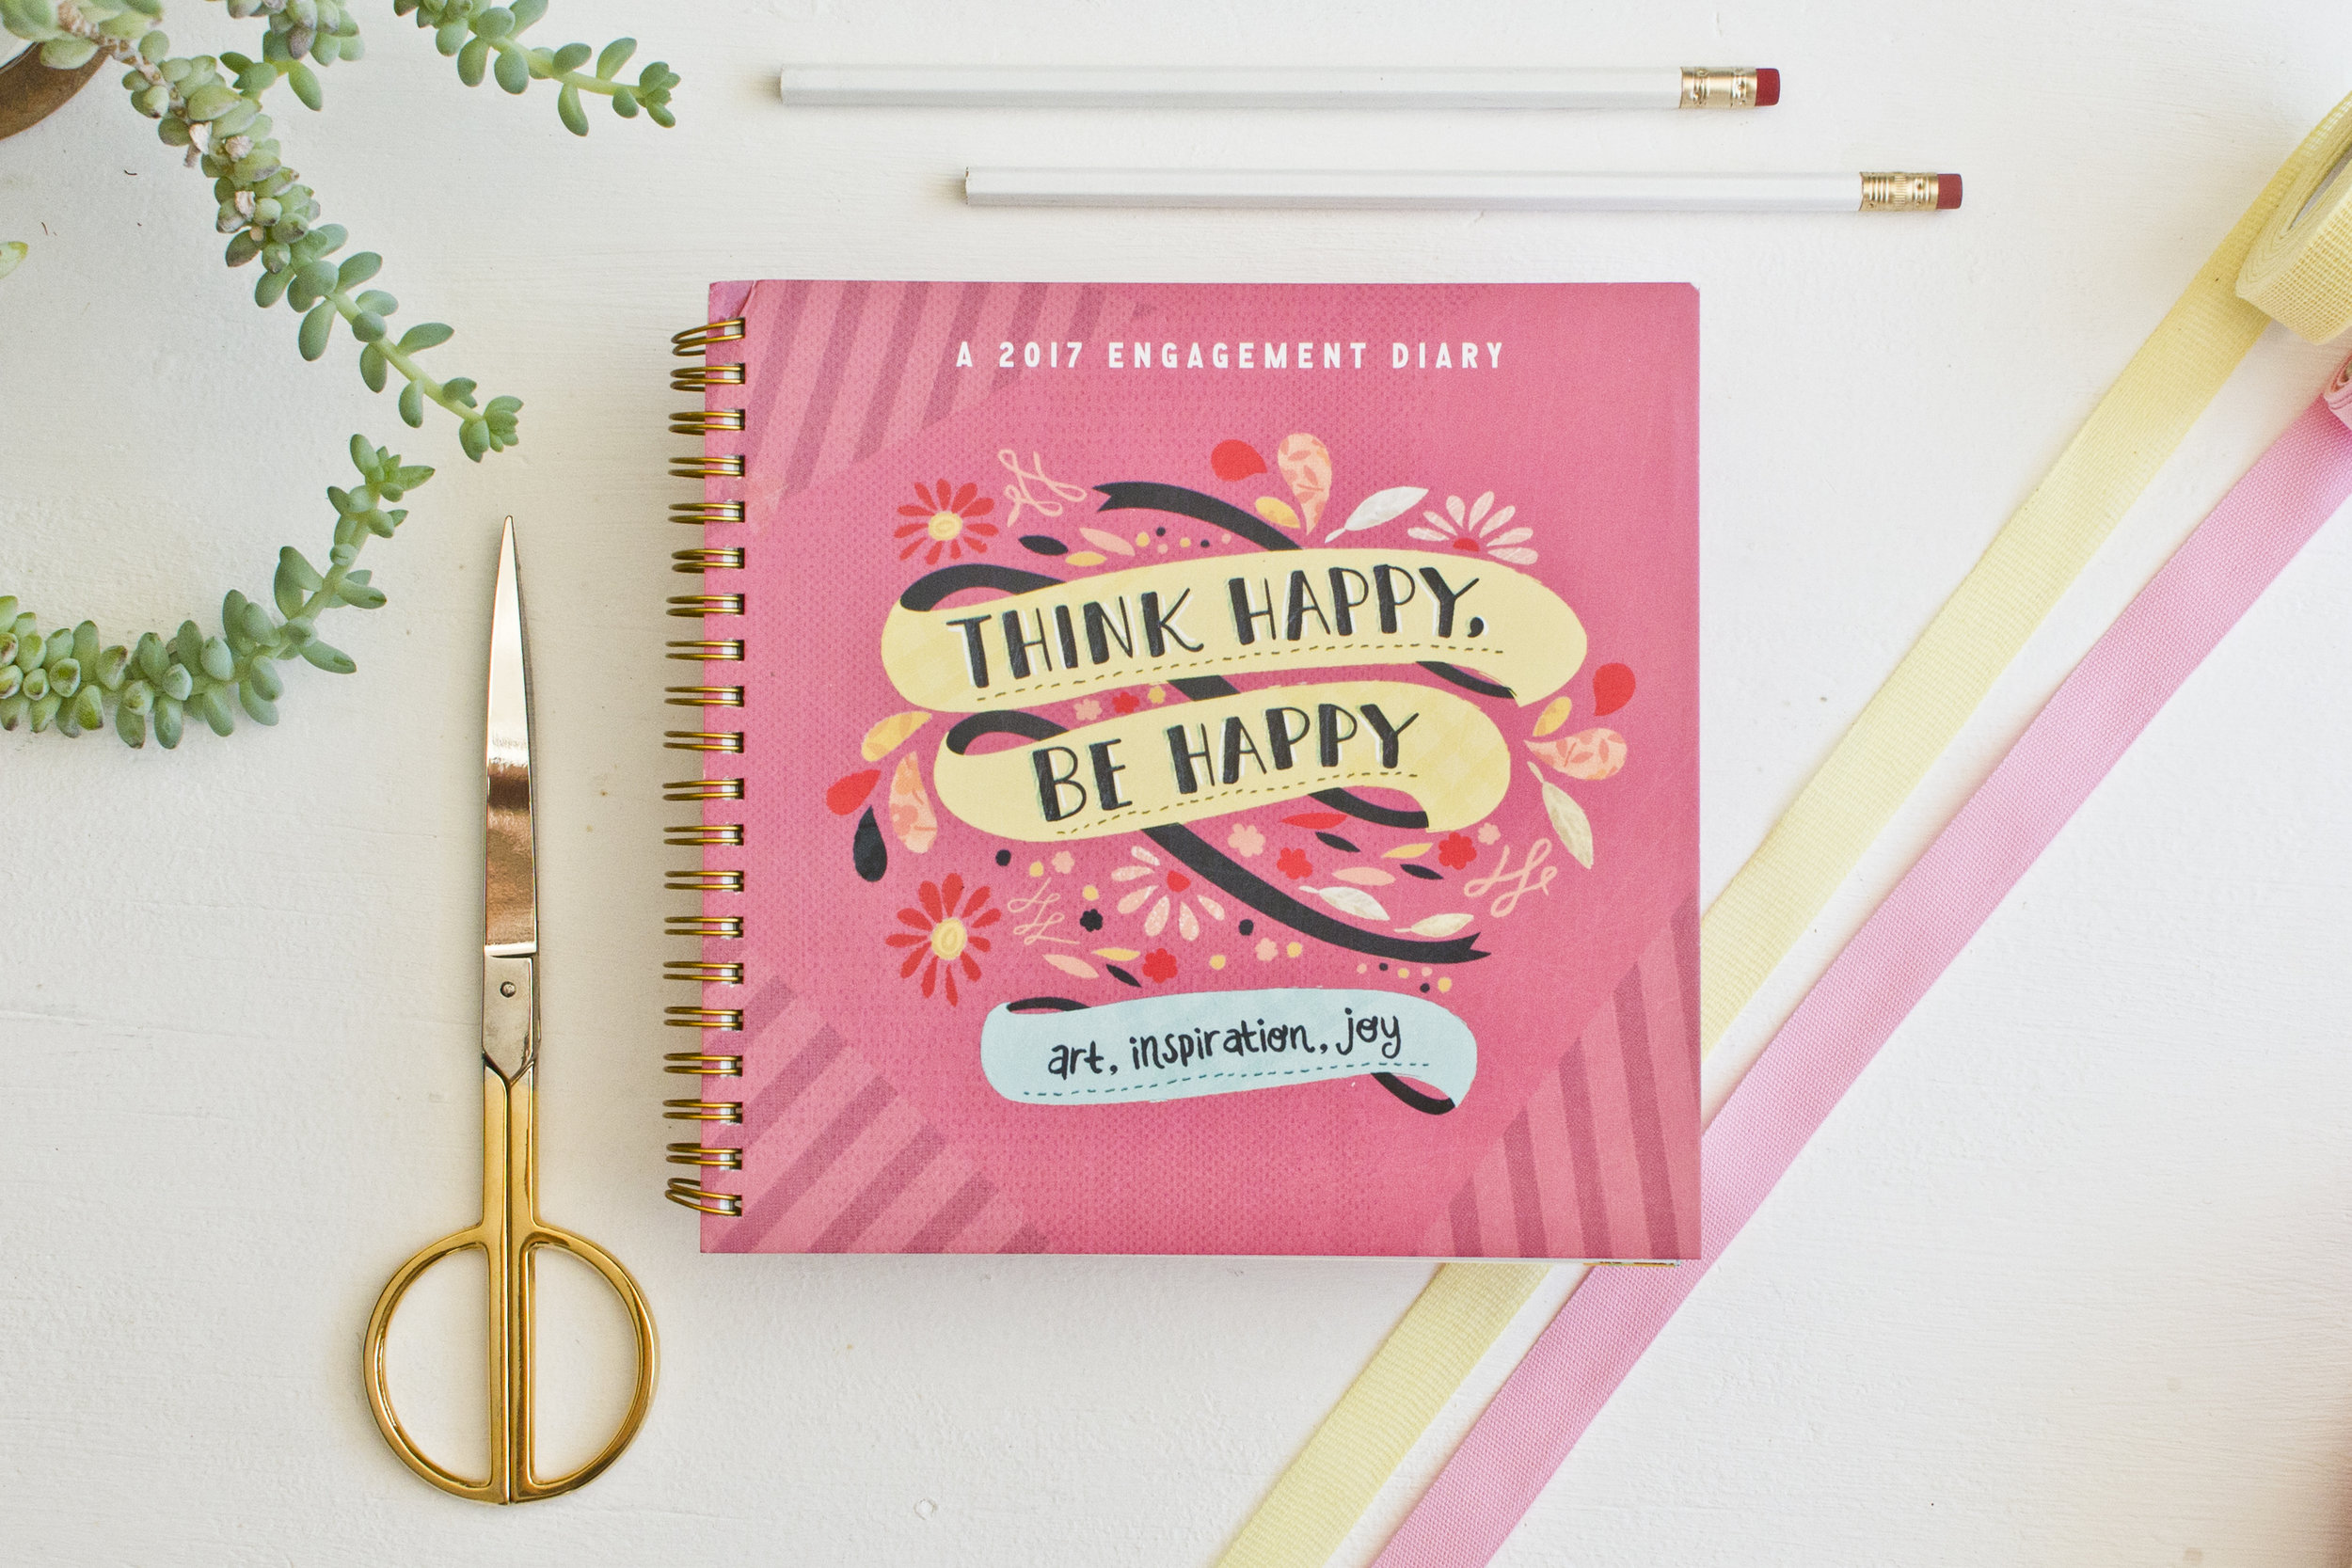 Workman Publishing 2017 Planner-Photo by Becca Cahan as seen on Beccacahan.com